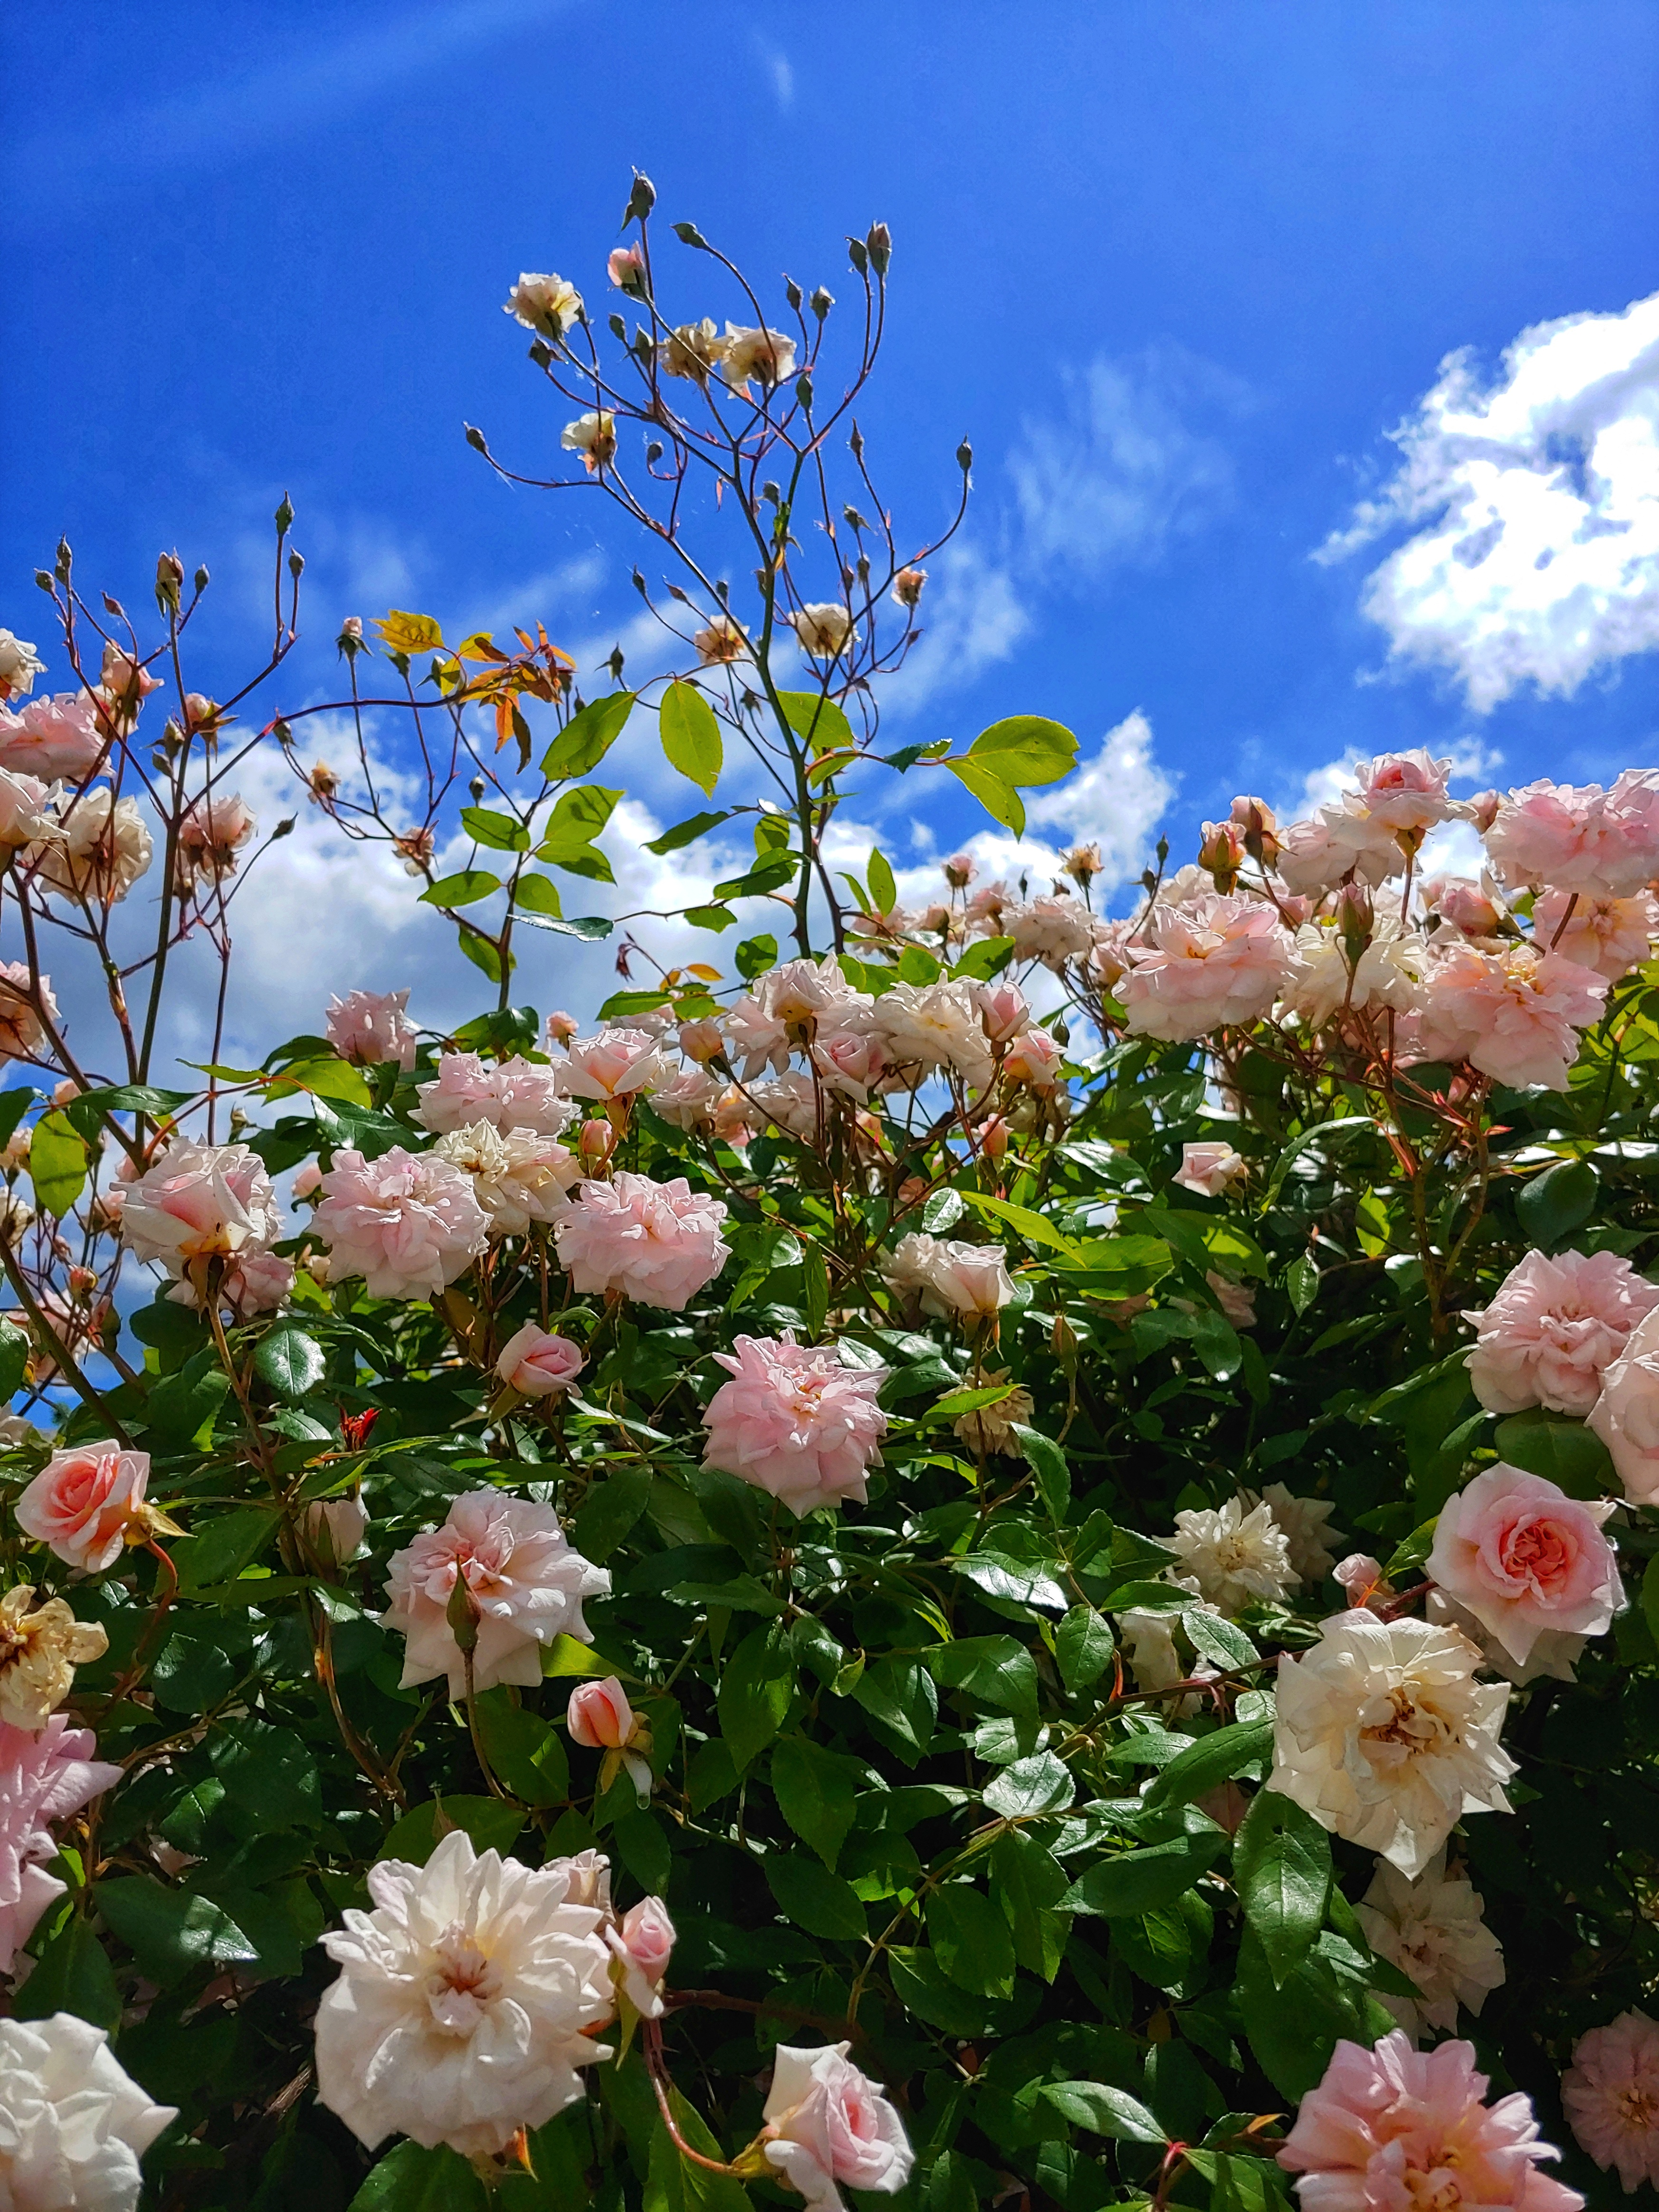 Small pink roses on a bush with a background of bright blue sky.